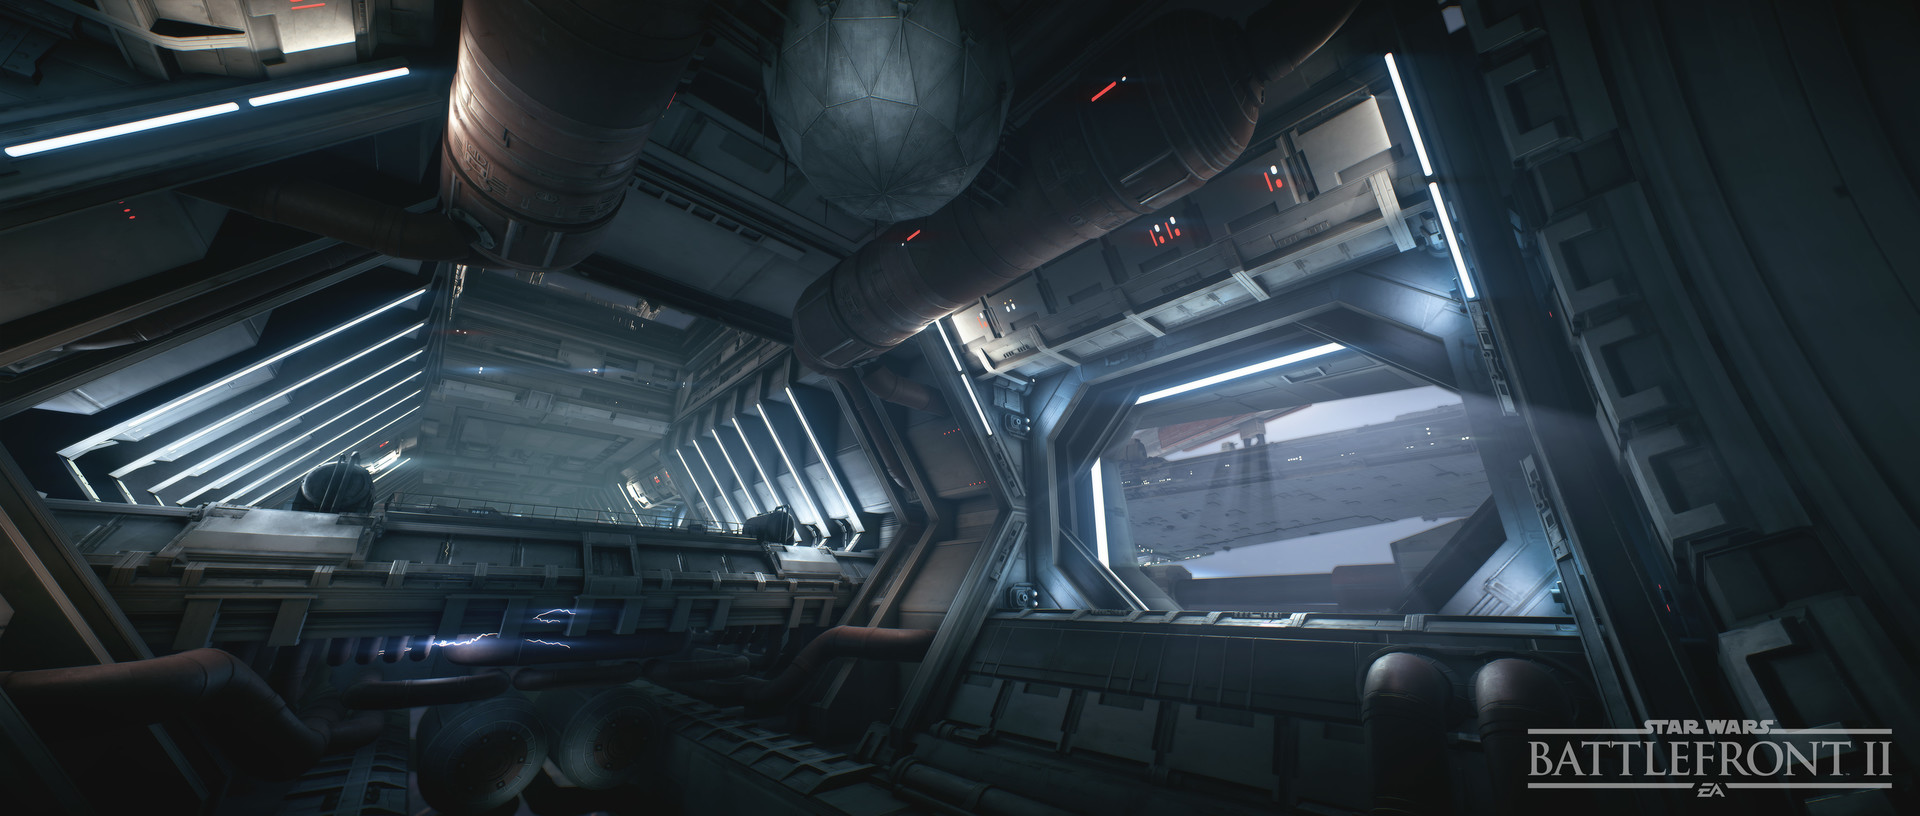 In Game view of interior